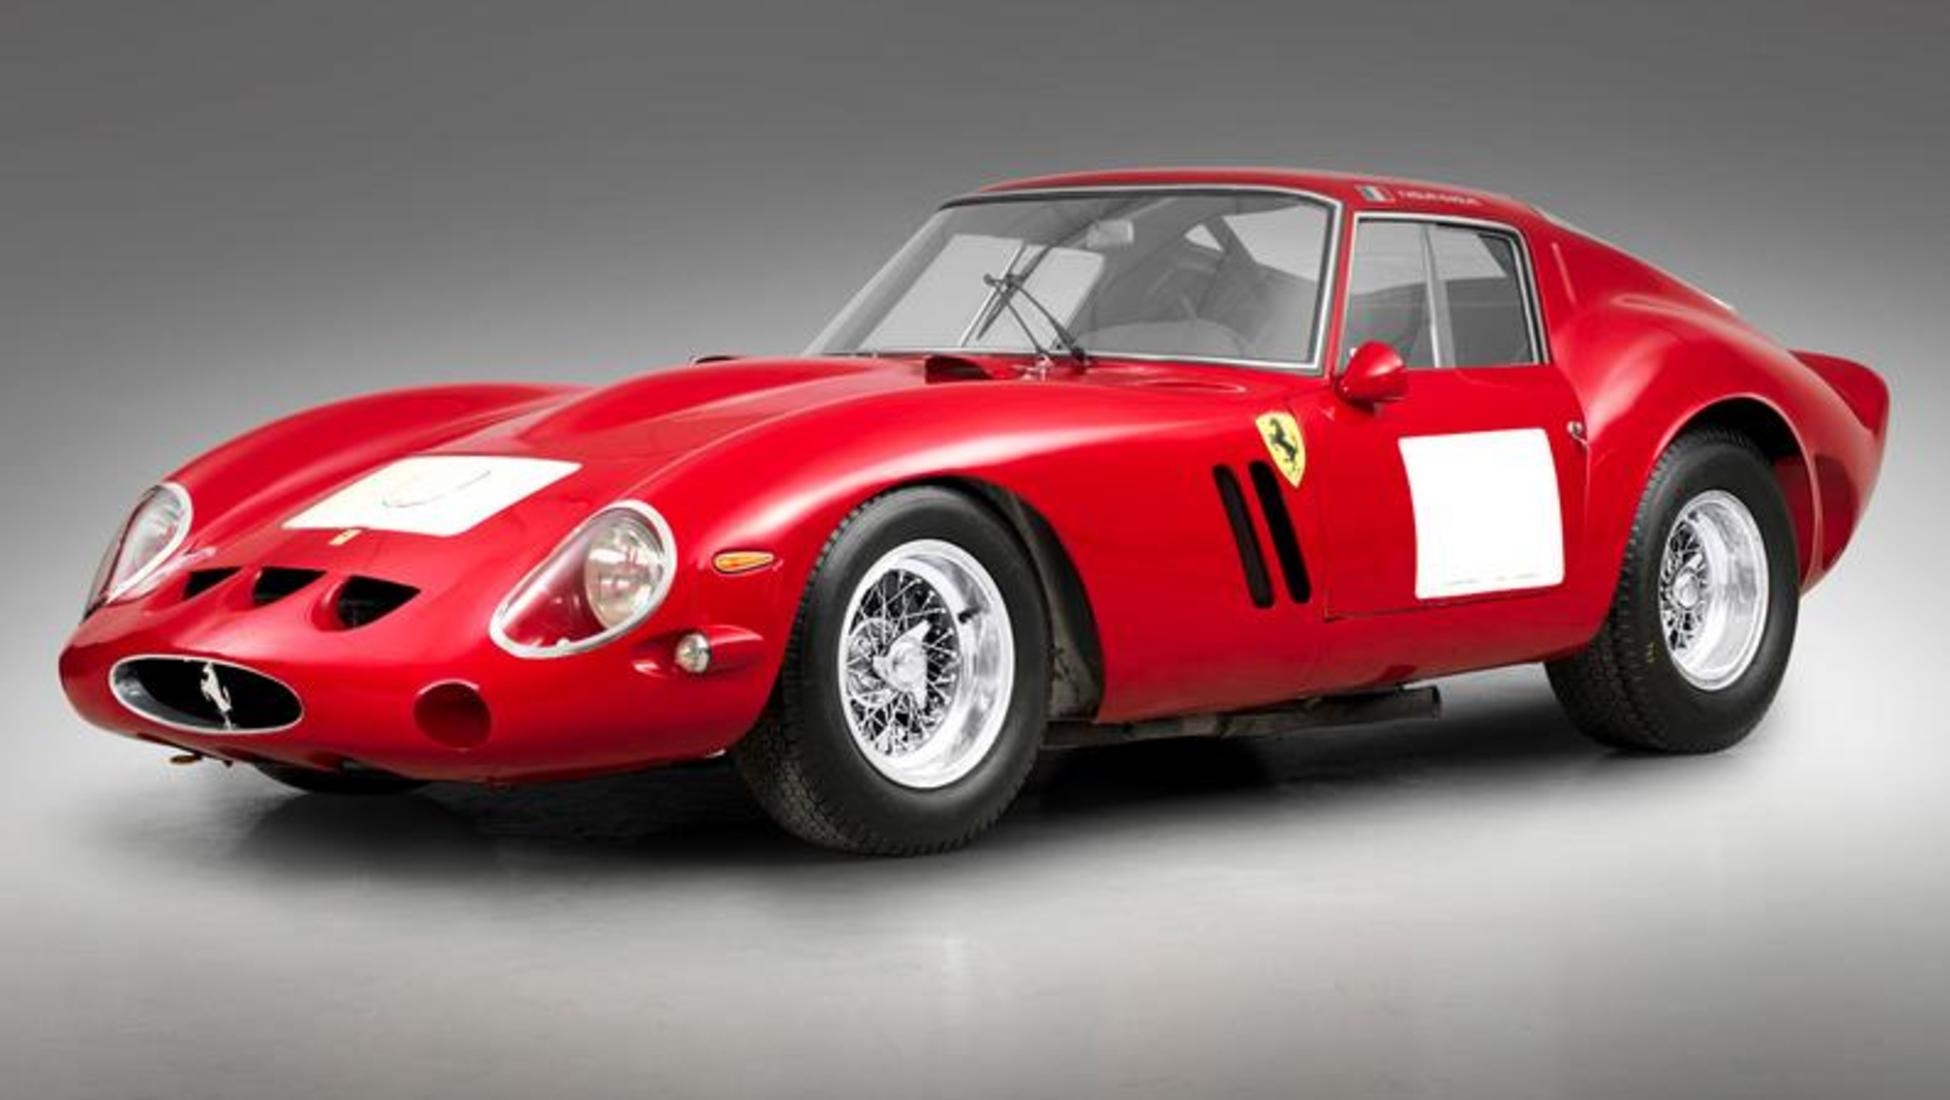 Top 5 Most Expensive Ferraris In The World Catawiki